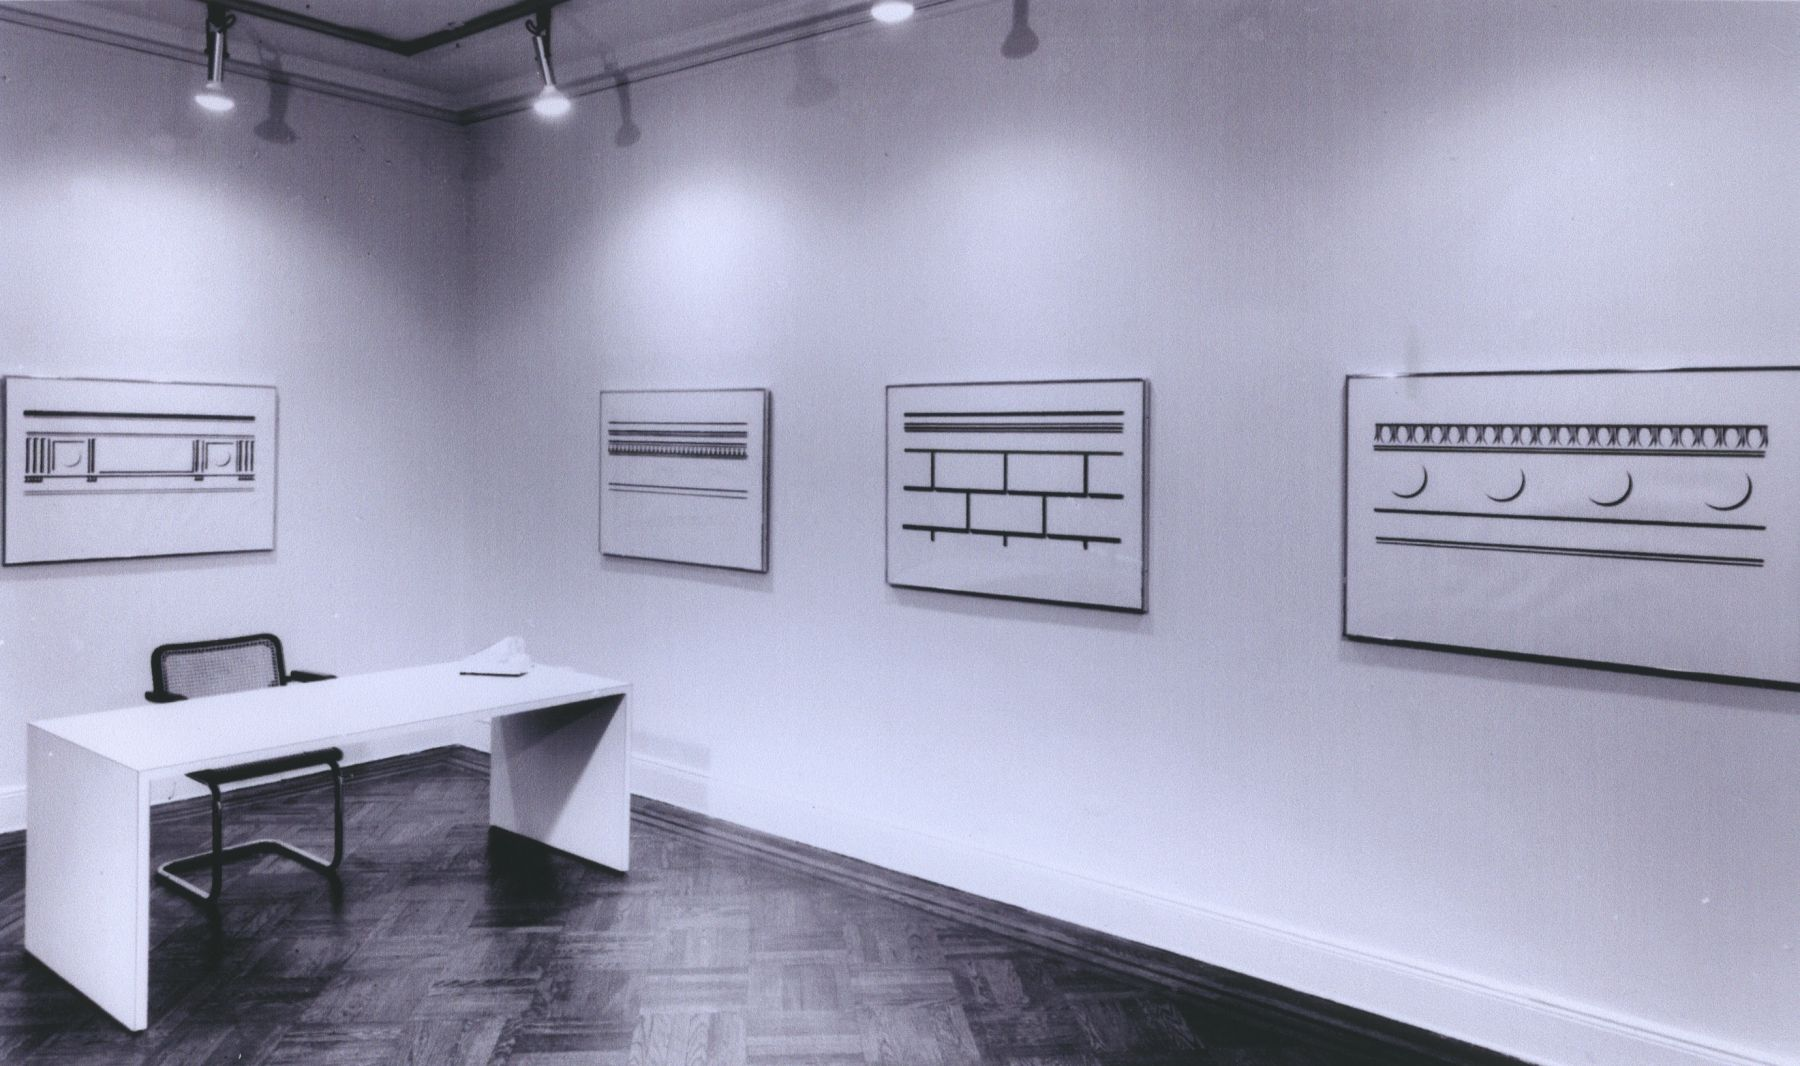 Installation view, Roy Lichtenstein Drawings, 4 EAST 77.